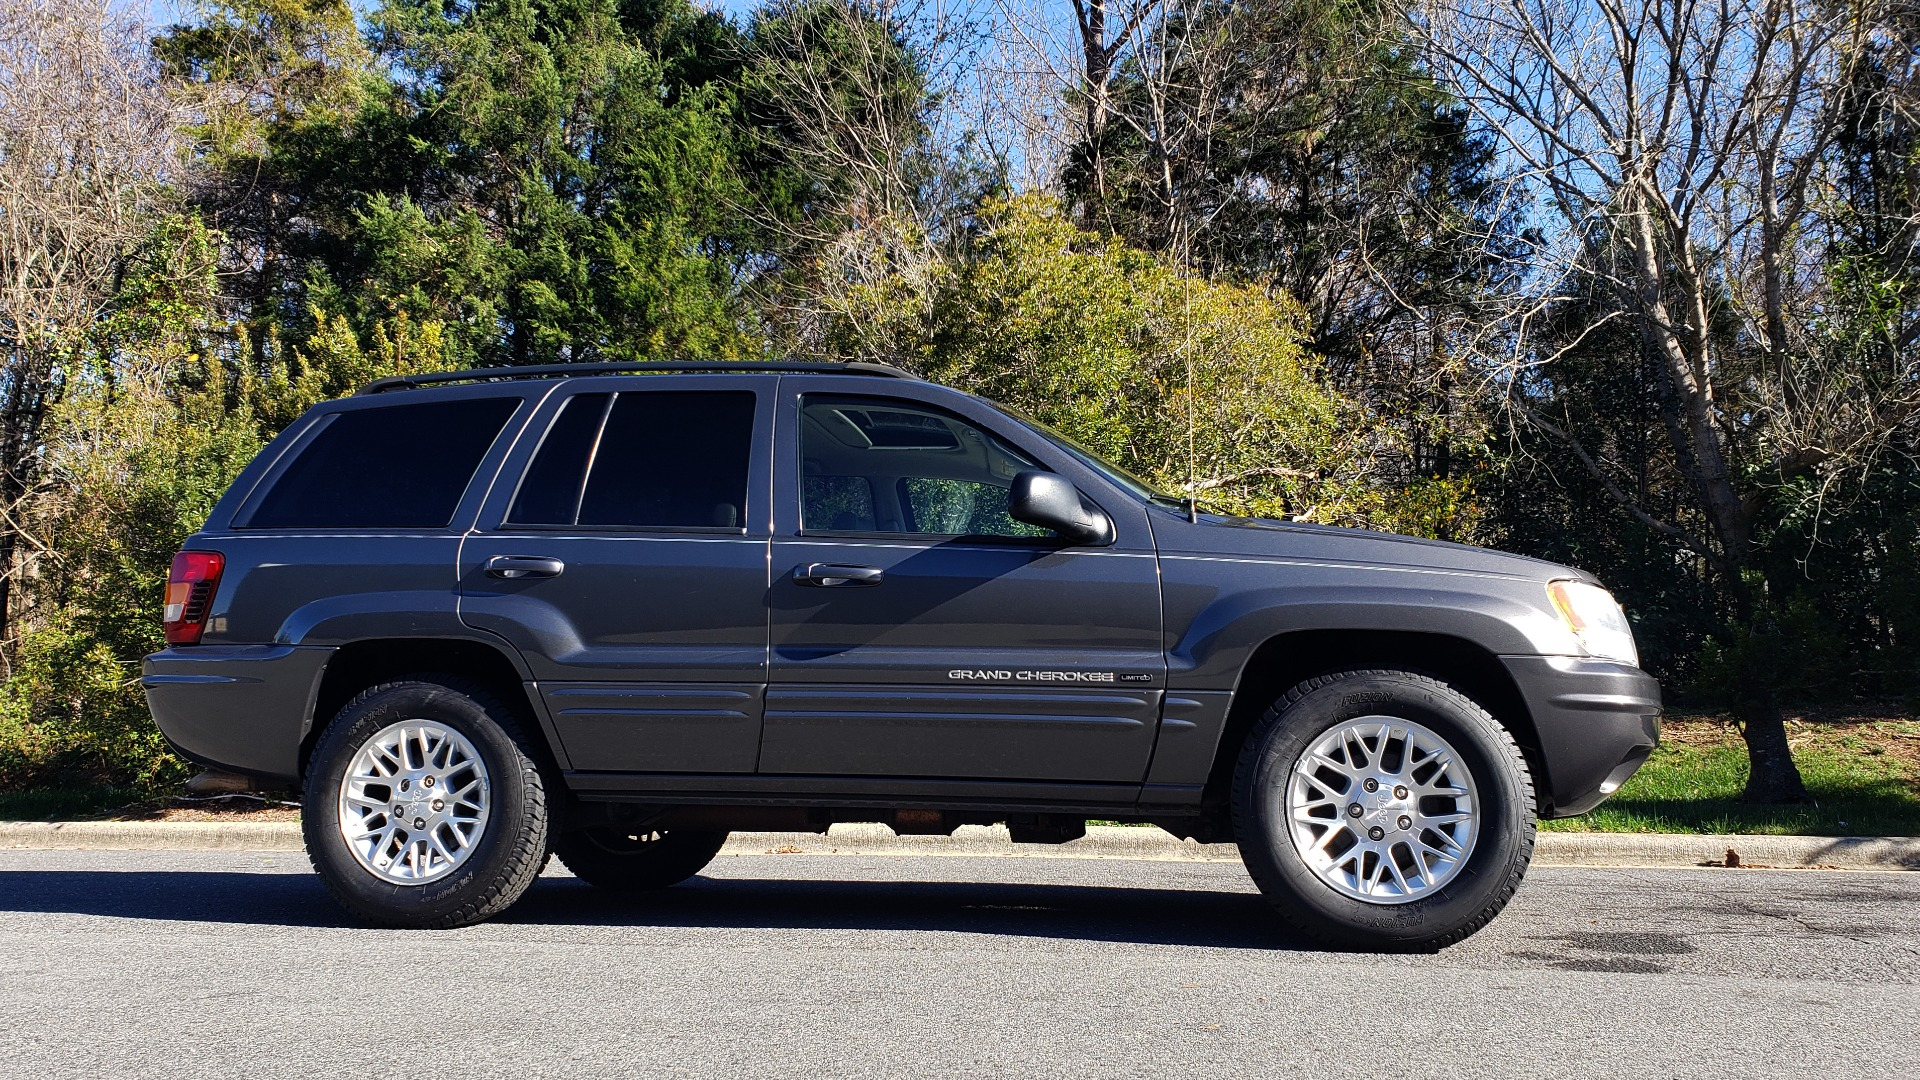 Used 2002 Jeep GRAND CHEROKEE LIMITED 4X4 / SUNROOF / 4.7L V8 / 5-SPD AUTO / CLD WTHR for sale Sold at Formula Imports in Charlotte NC 28227 5